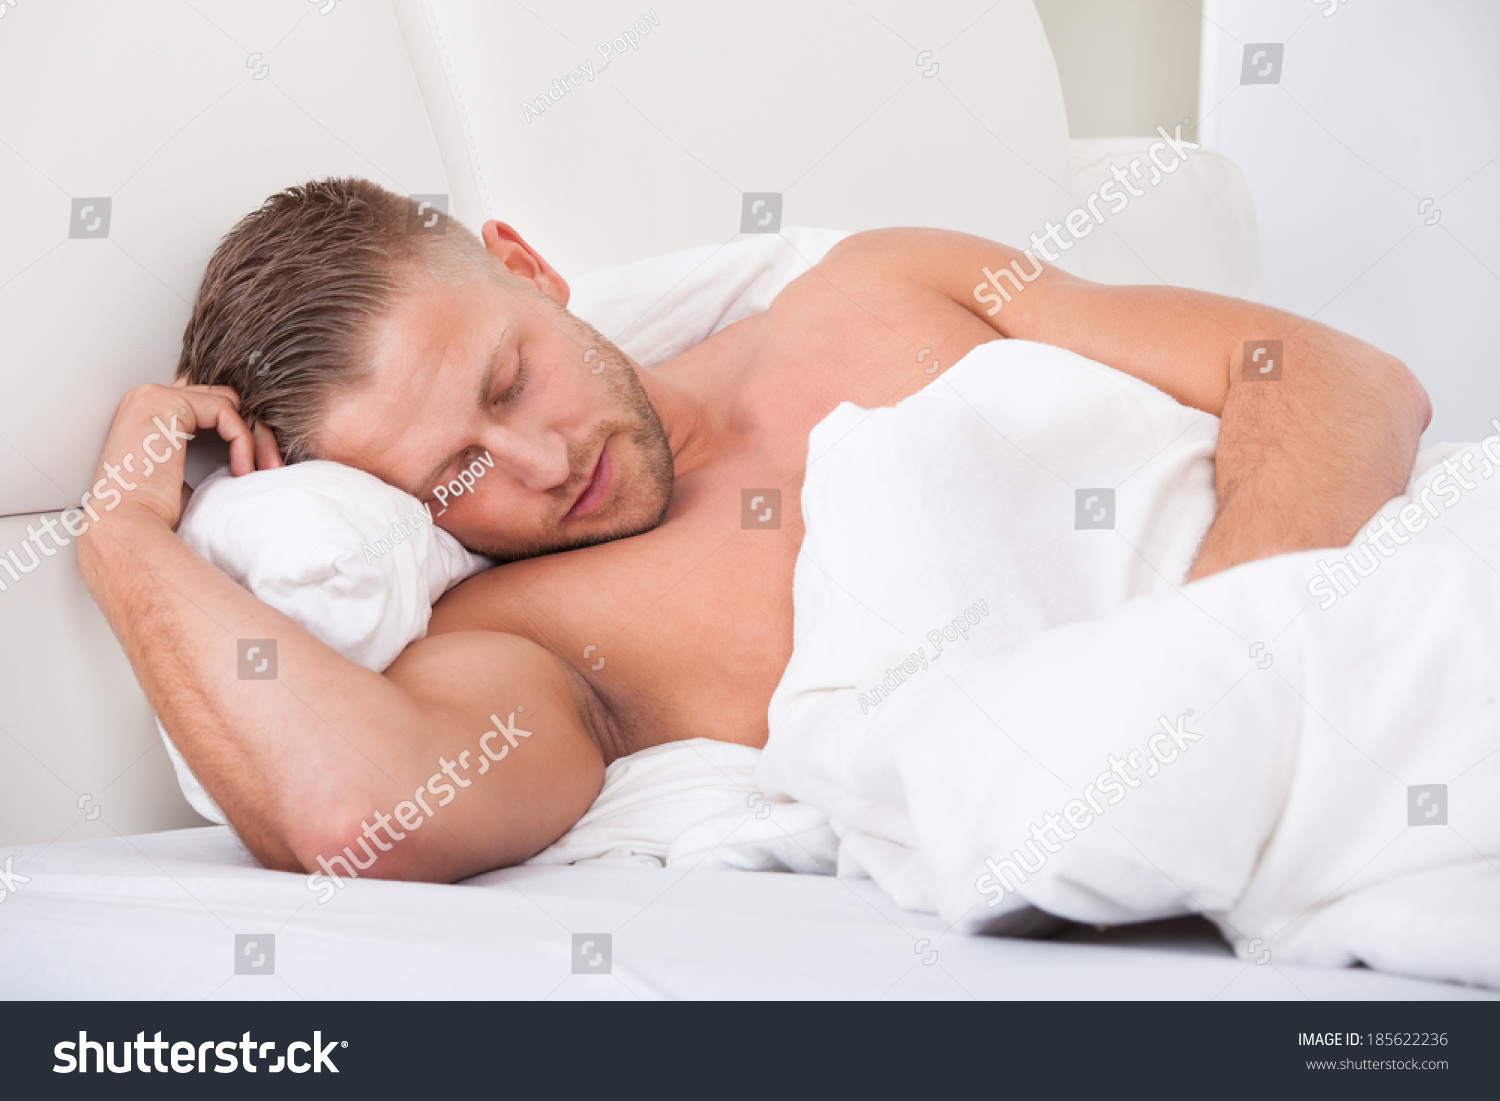 Man Sleeping Bed Propped Against Pillows Stock Photo Edit Now